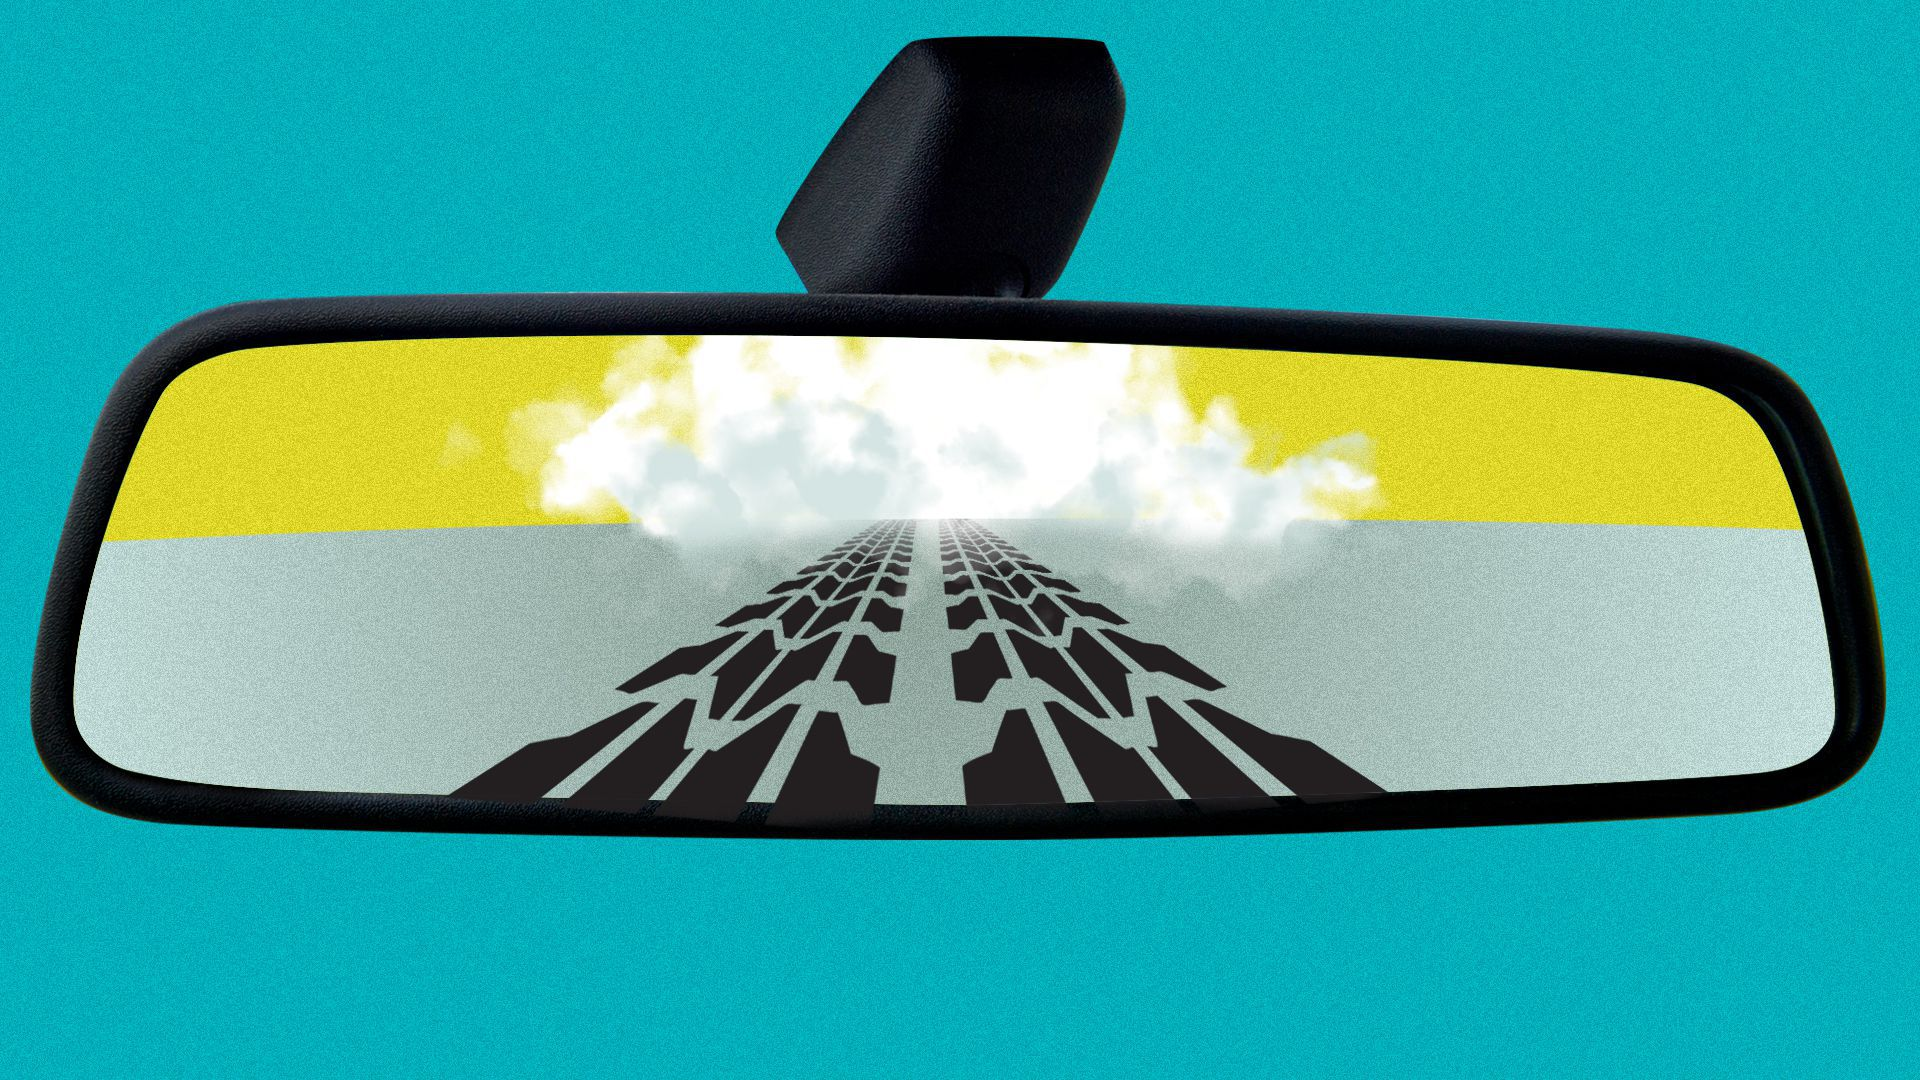 Illustration of a car's rear-view mirror, in which tire tracks and a dust cloud can be seen.